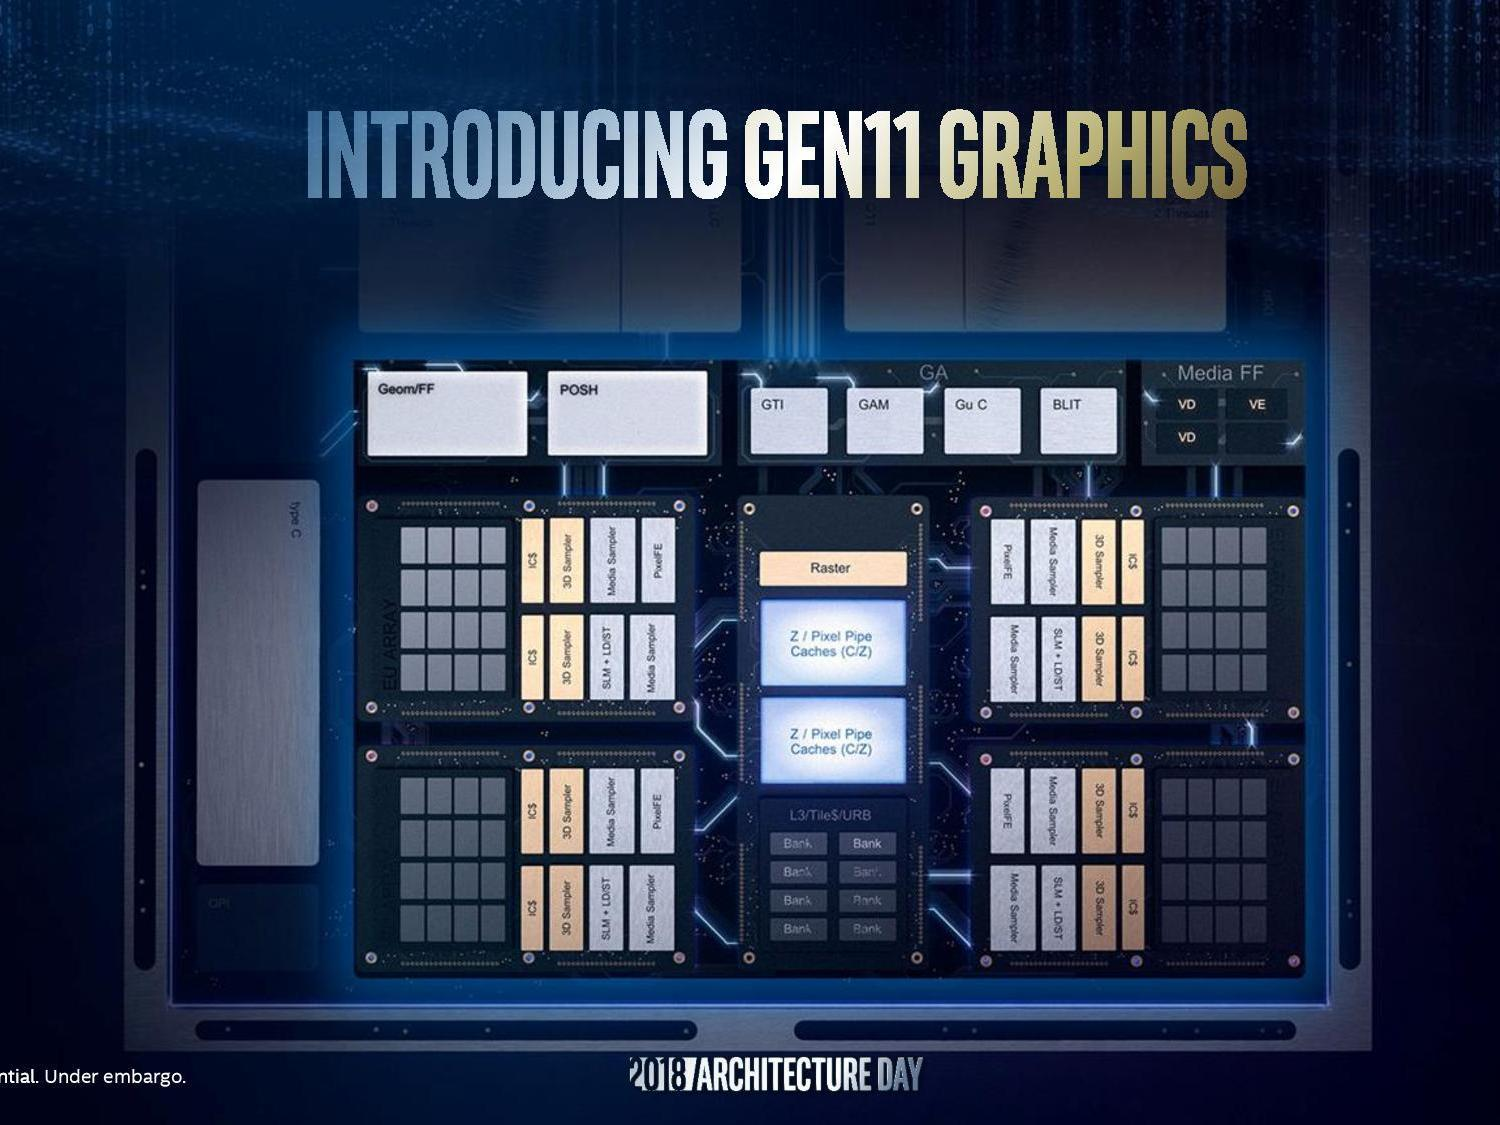 Анонс интегрированной графической архитектуры GEN11 на Intel Architecture Day 2018